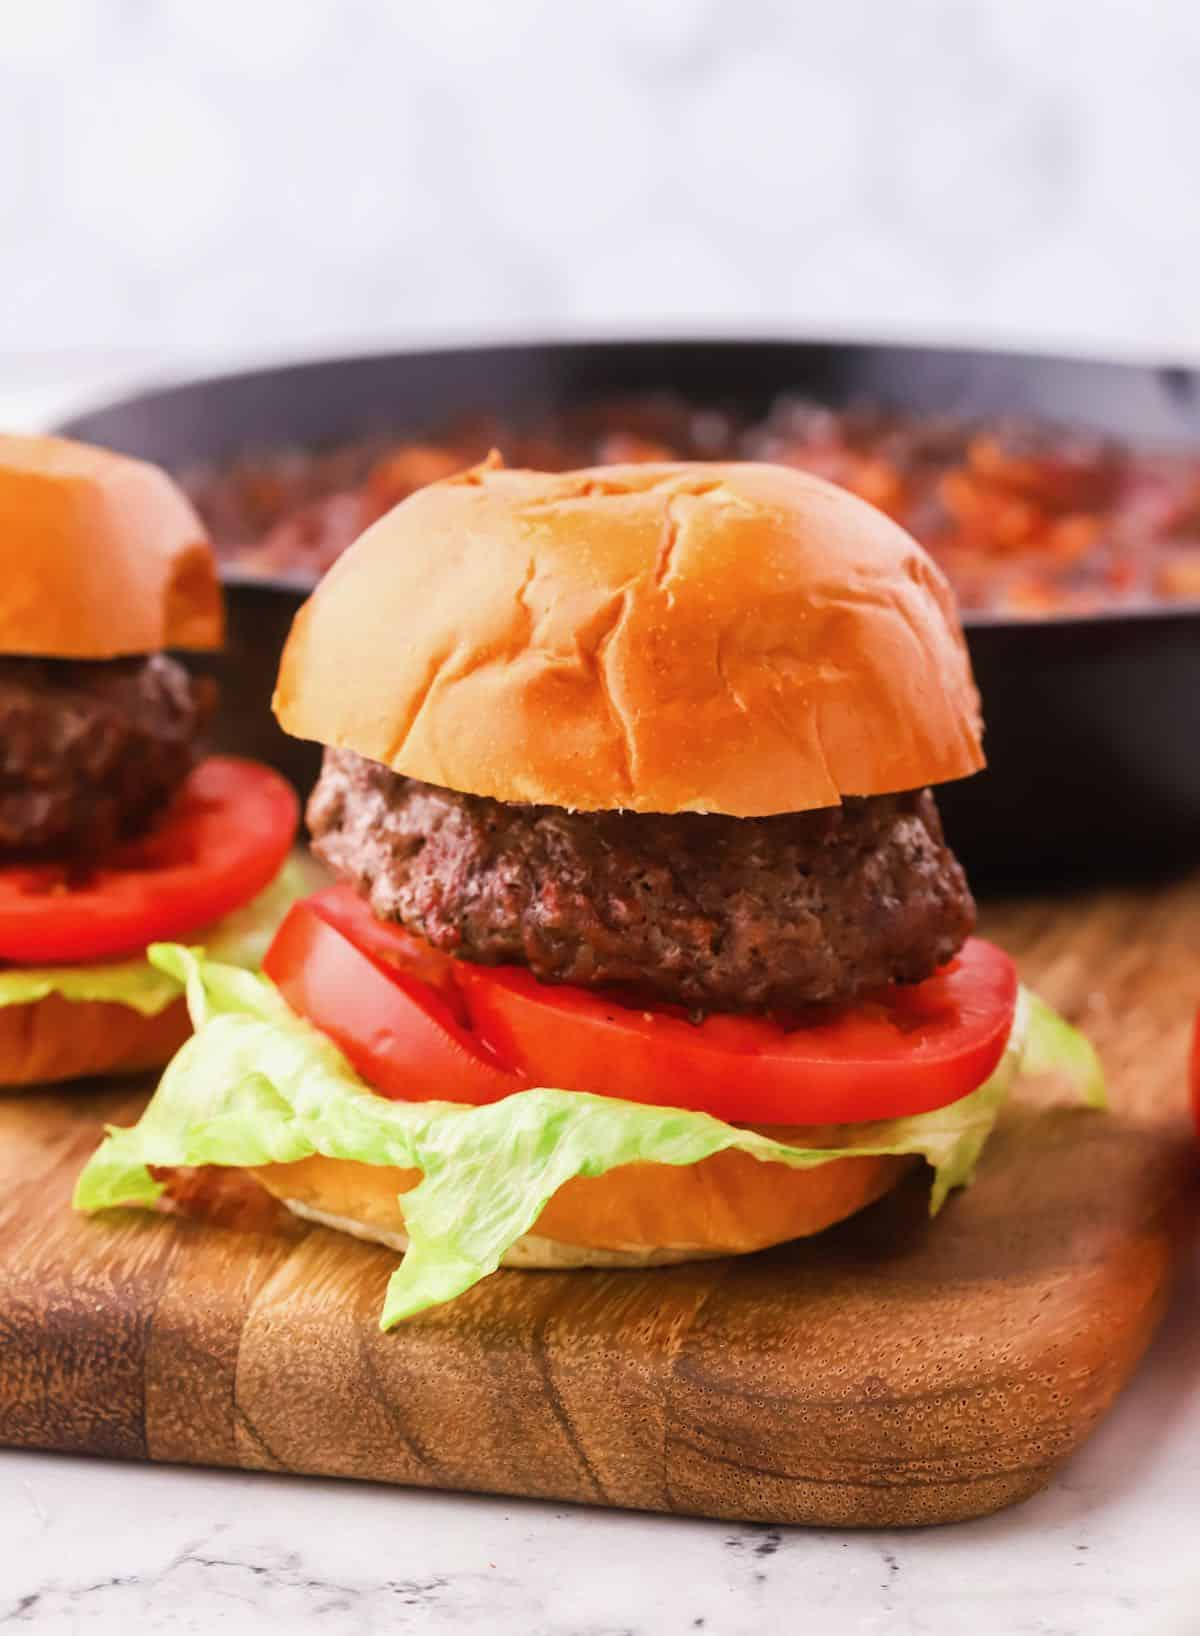 A hamburger on a bun with lettuce and tomato.